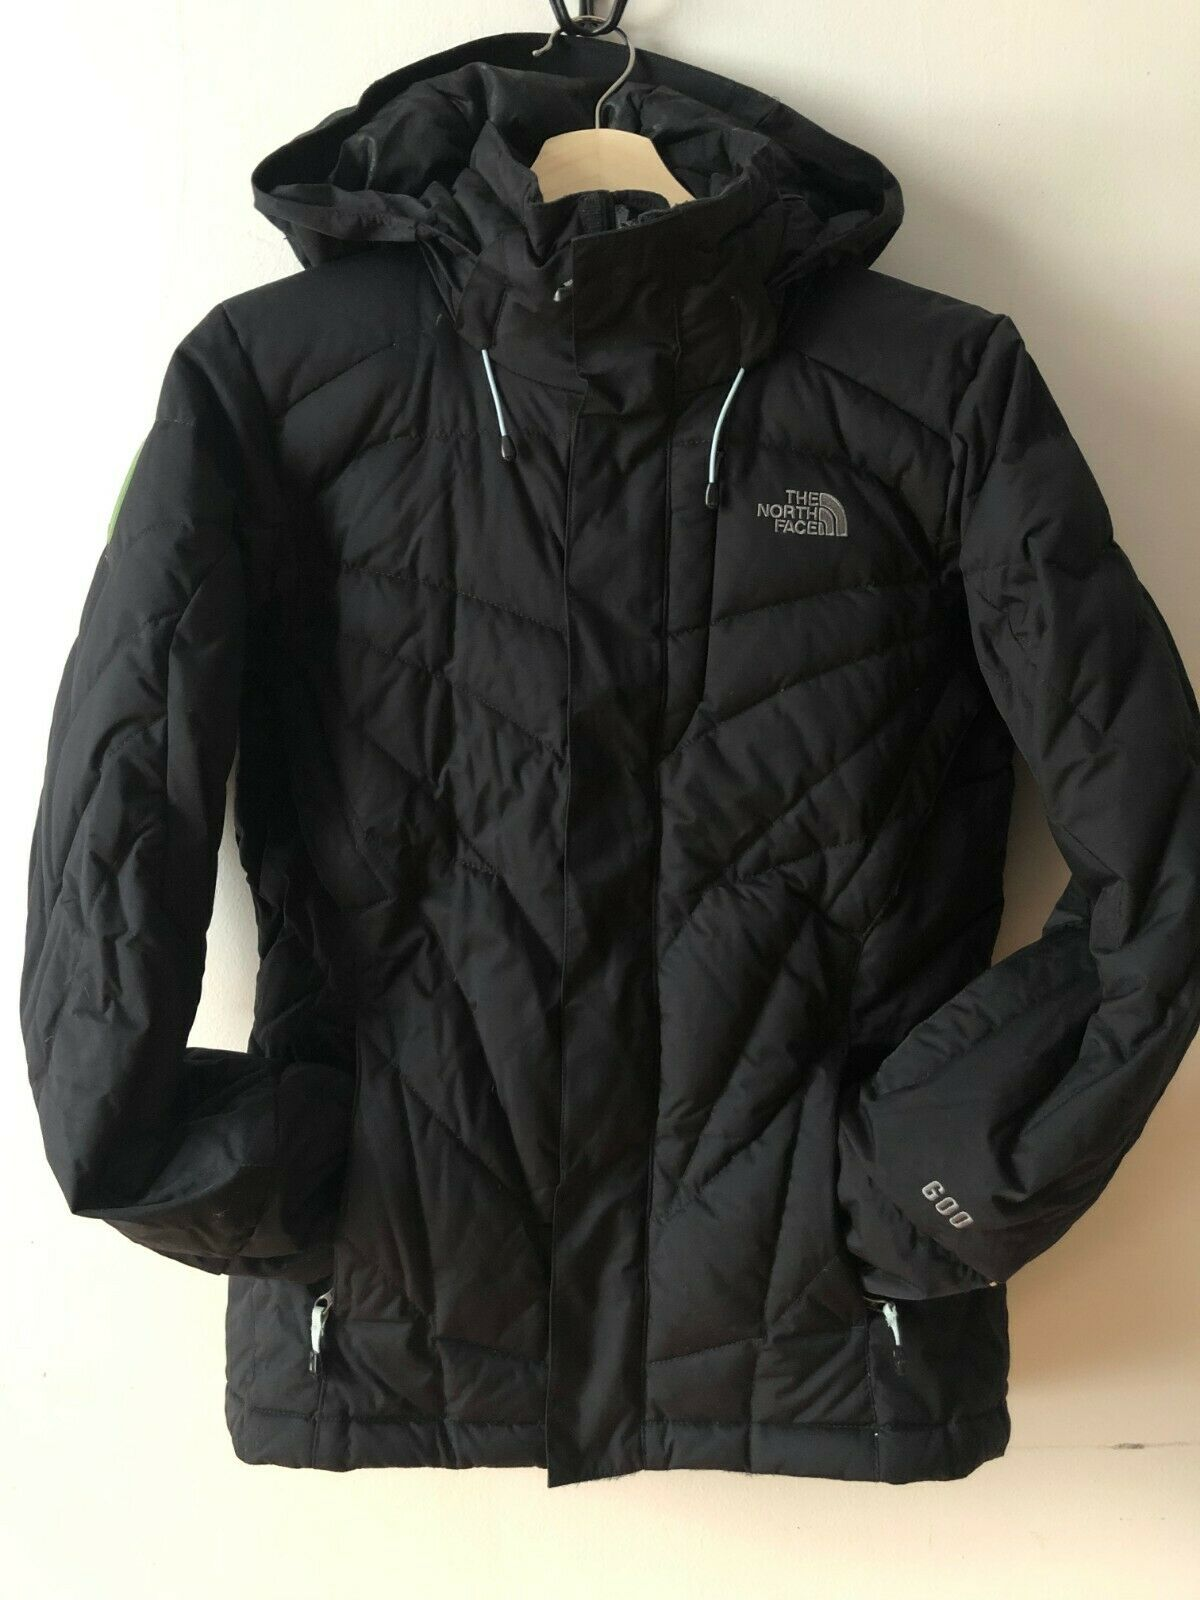 THE NORTH FACE 600 RECCO PRODIGY INSULATED SKI  SIZE S